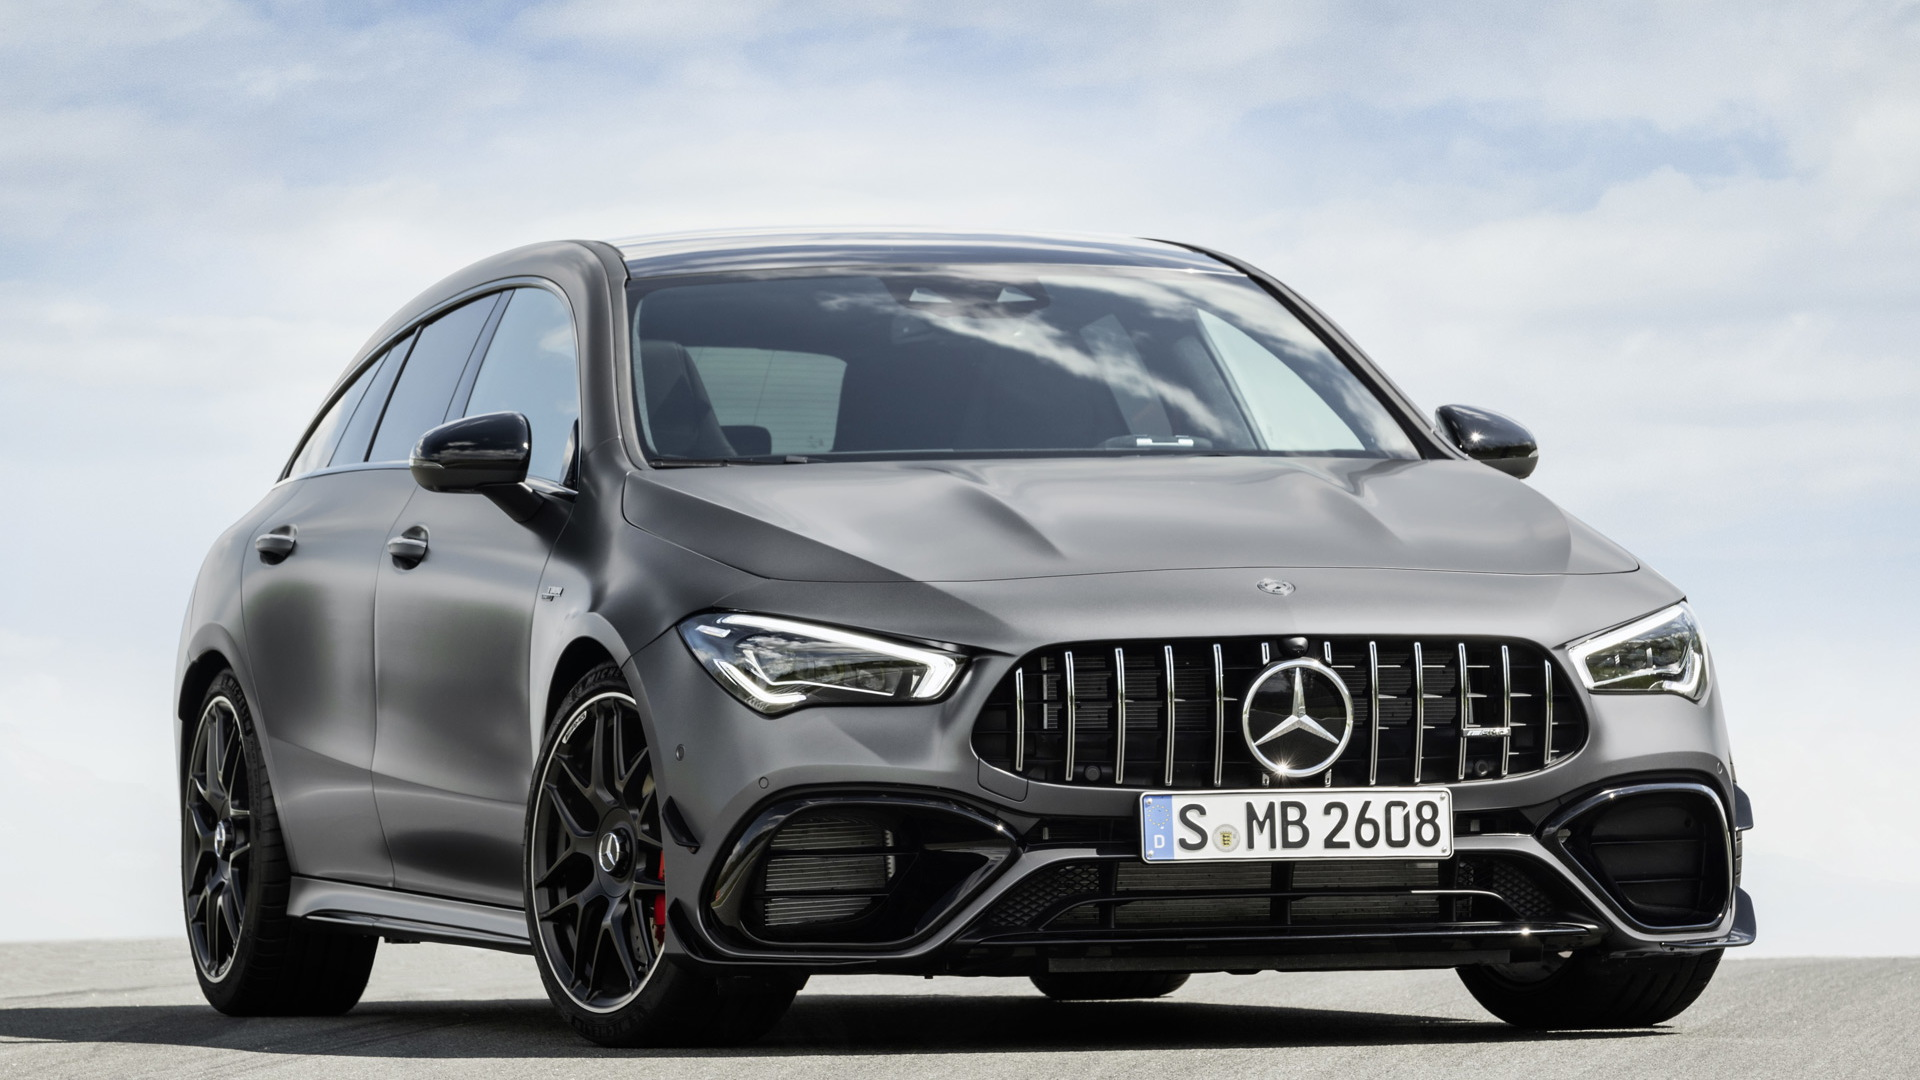 2020 Mercedes-AMG CLA45 S Shooting Brake